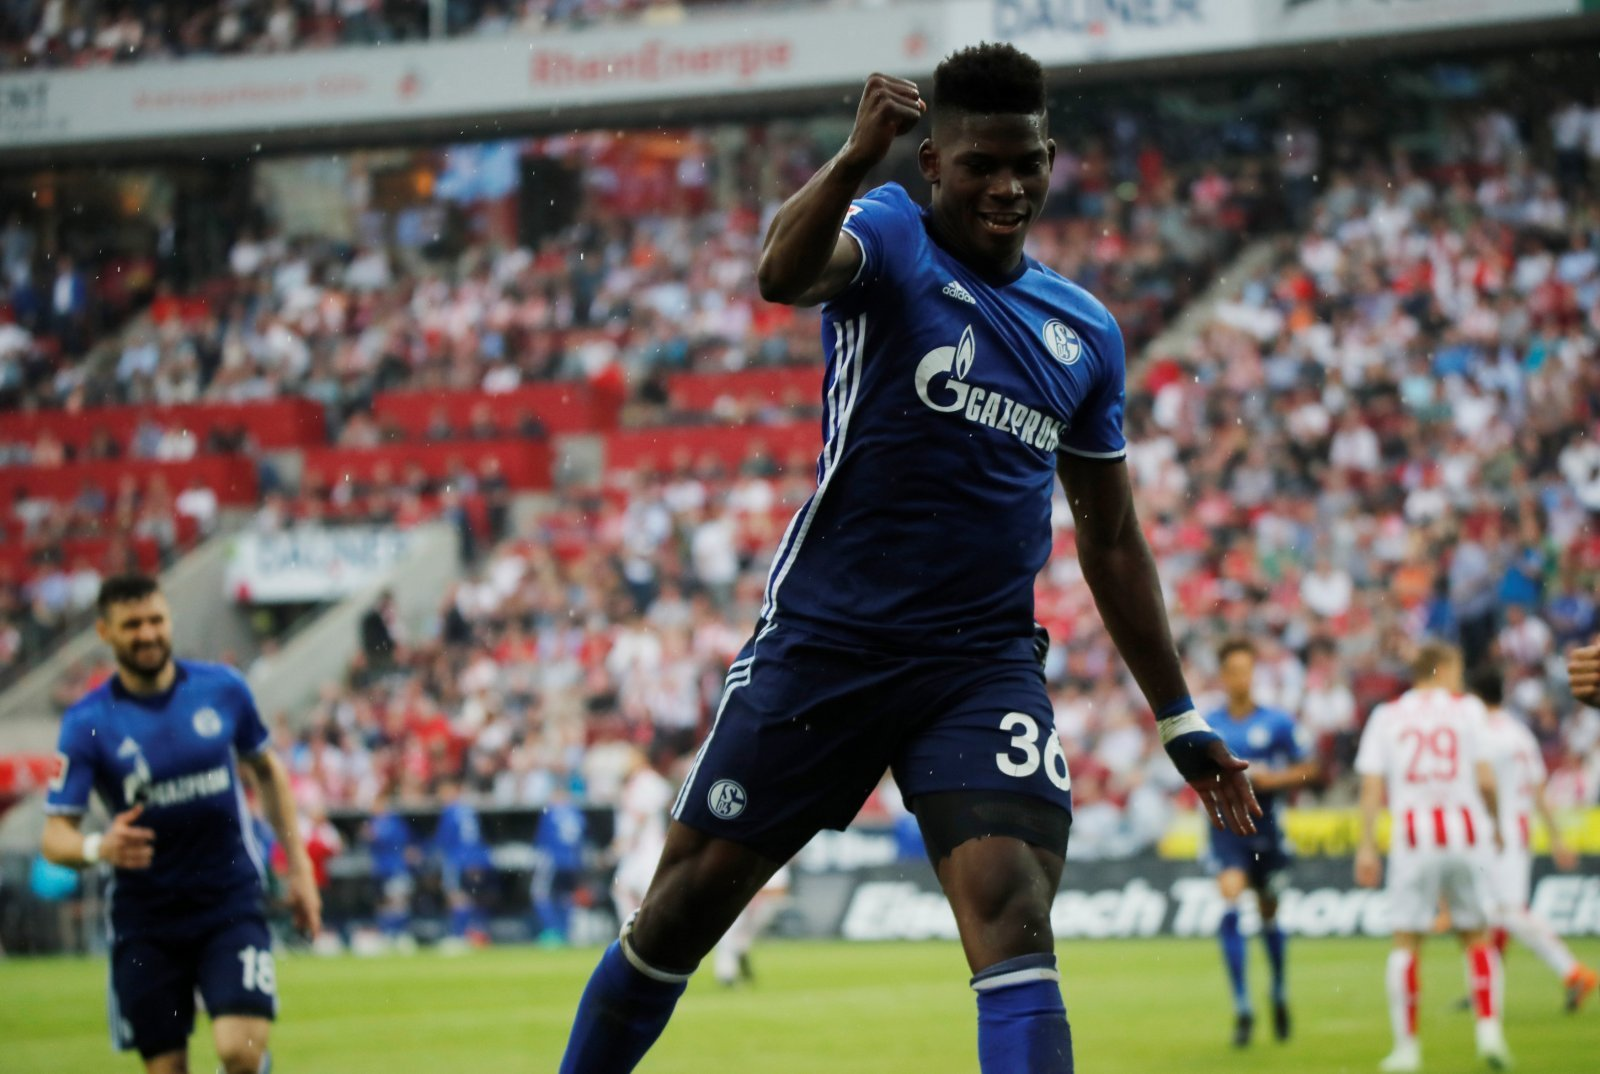 Everton should turn to Breel Embolo as a versatile forward option